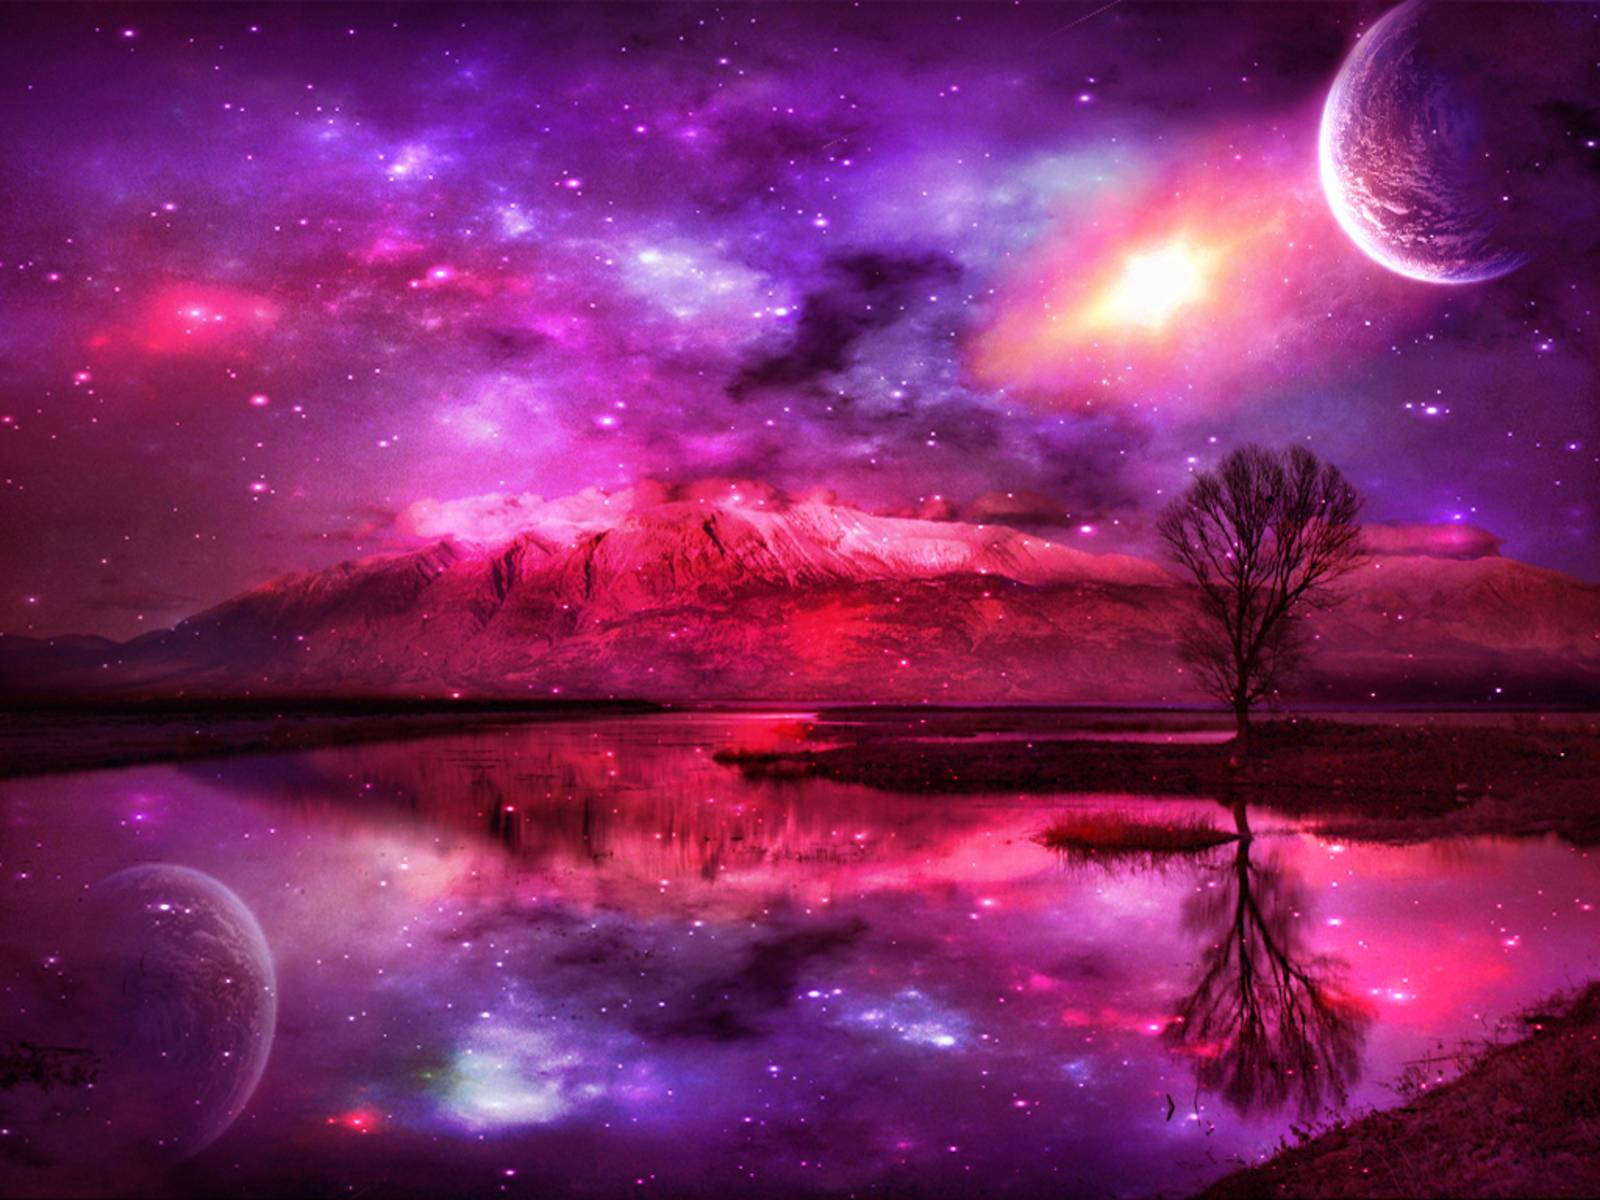 Fantasy landscape wallpapers wallpaper cave for Space landscape